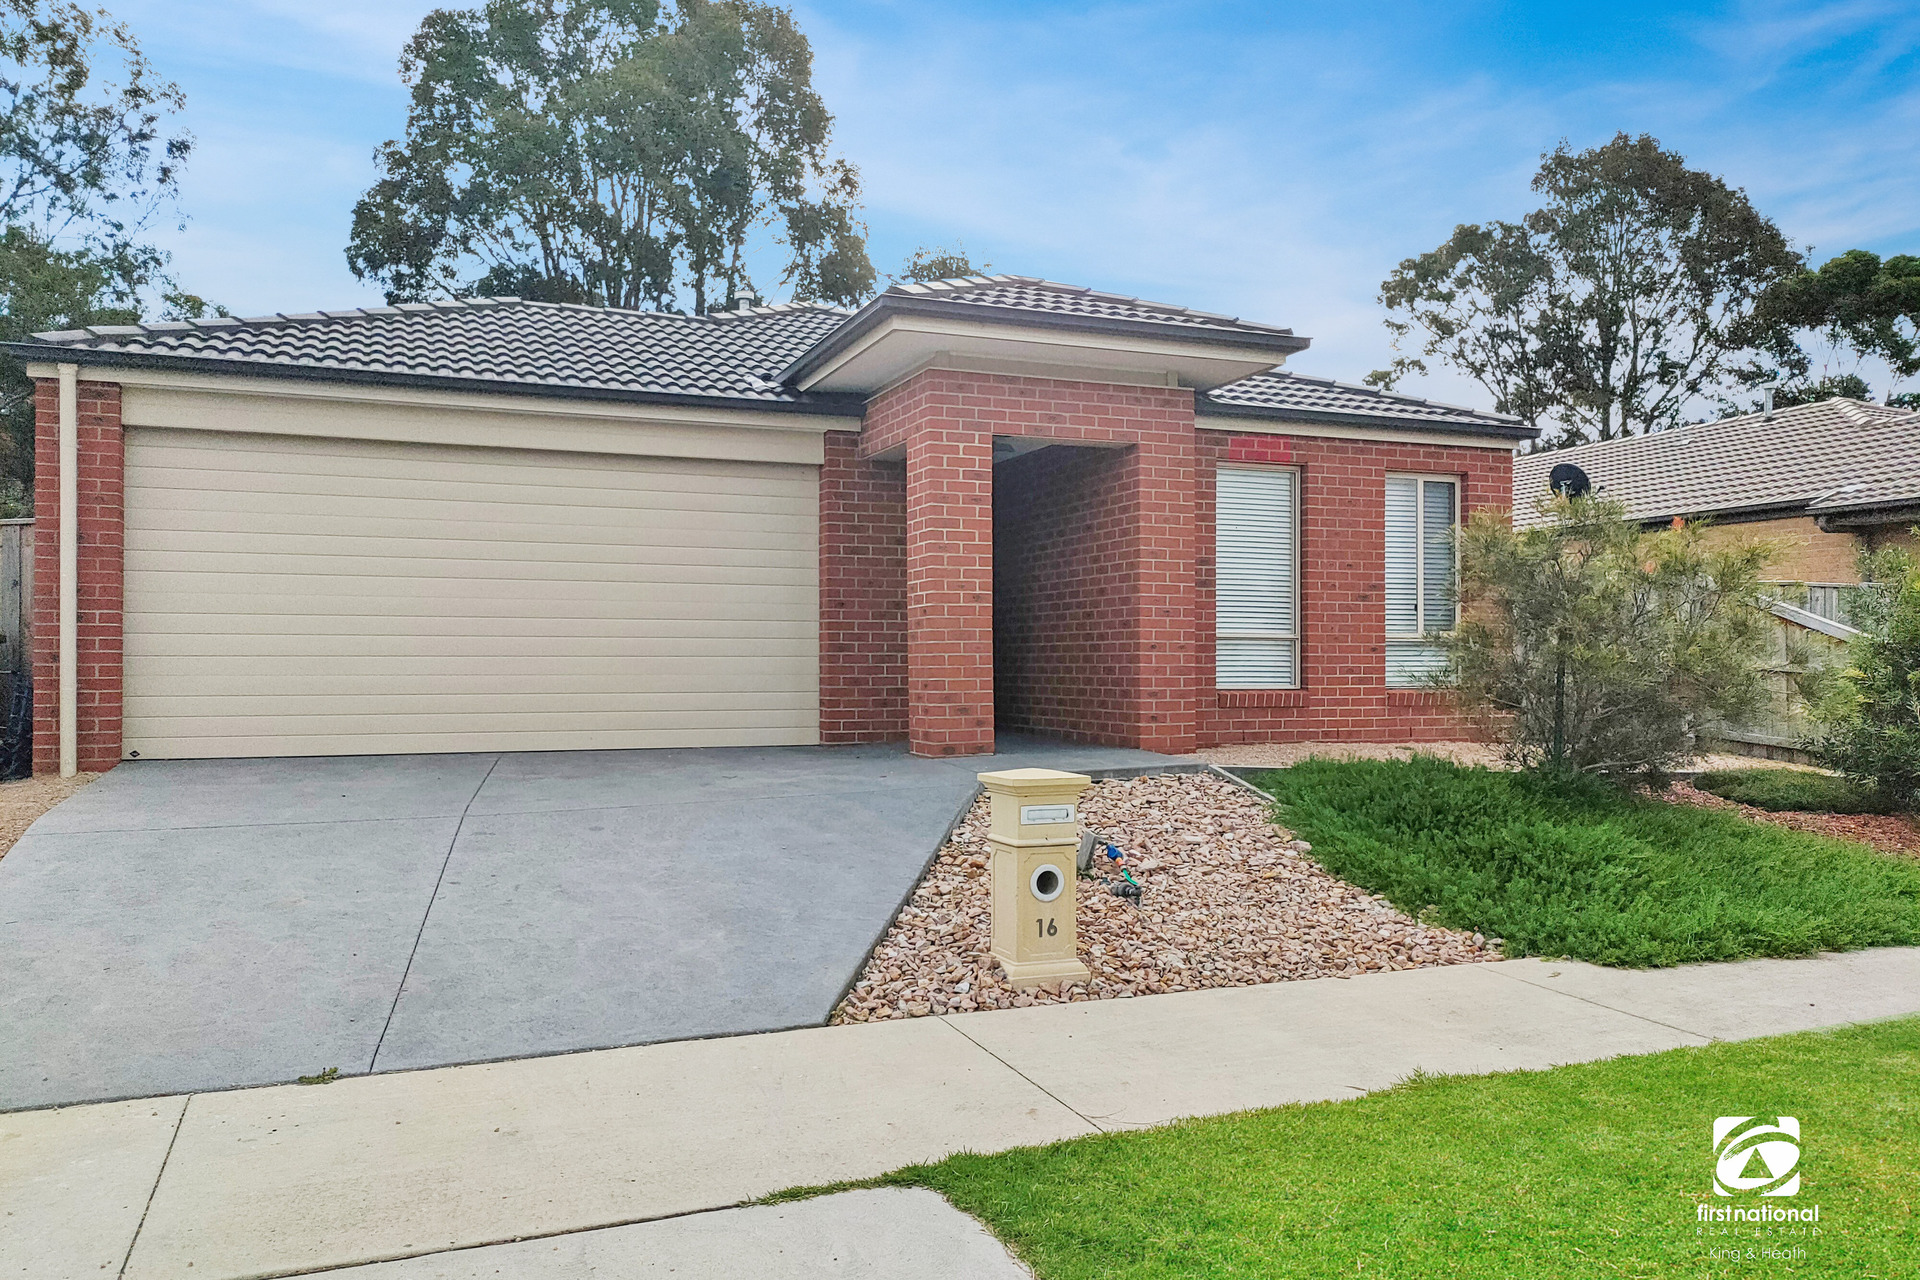 16 Eastcoast Court, East Bairnsdale VIC 3875-1